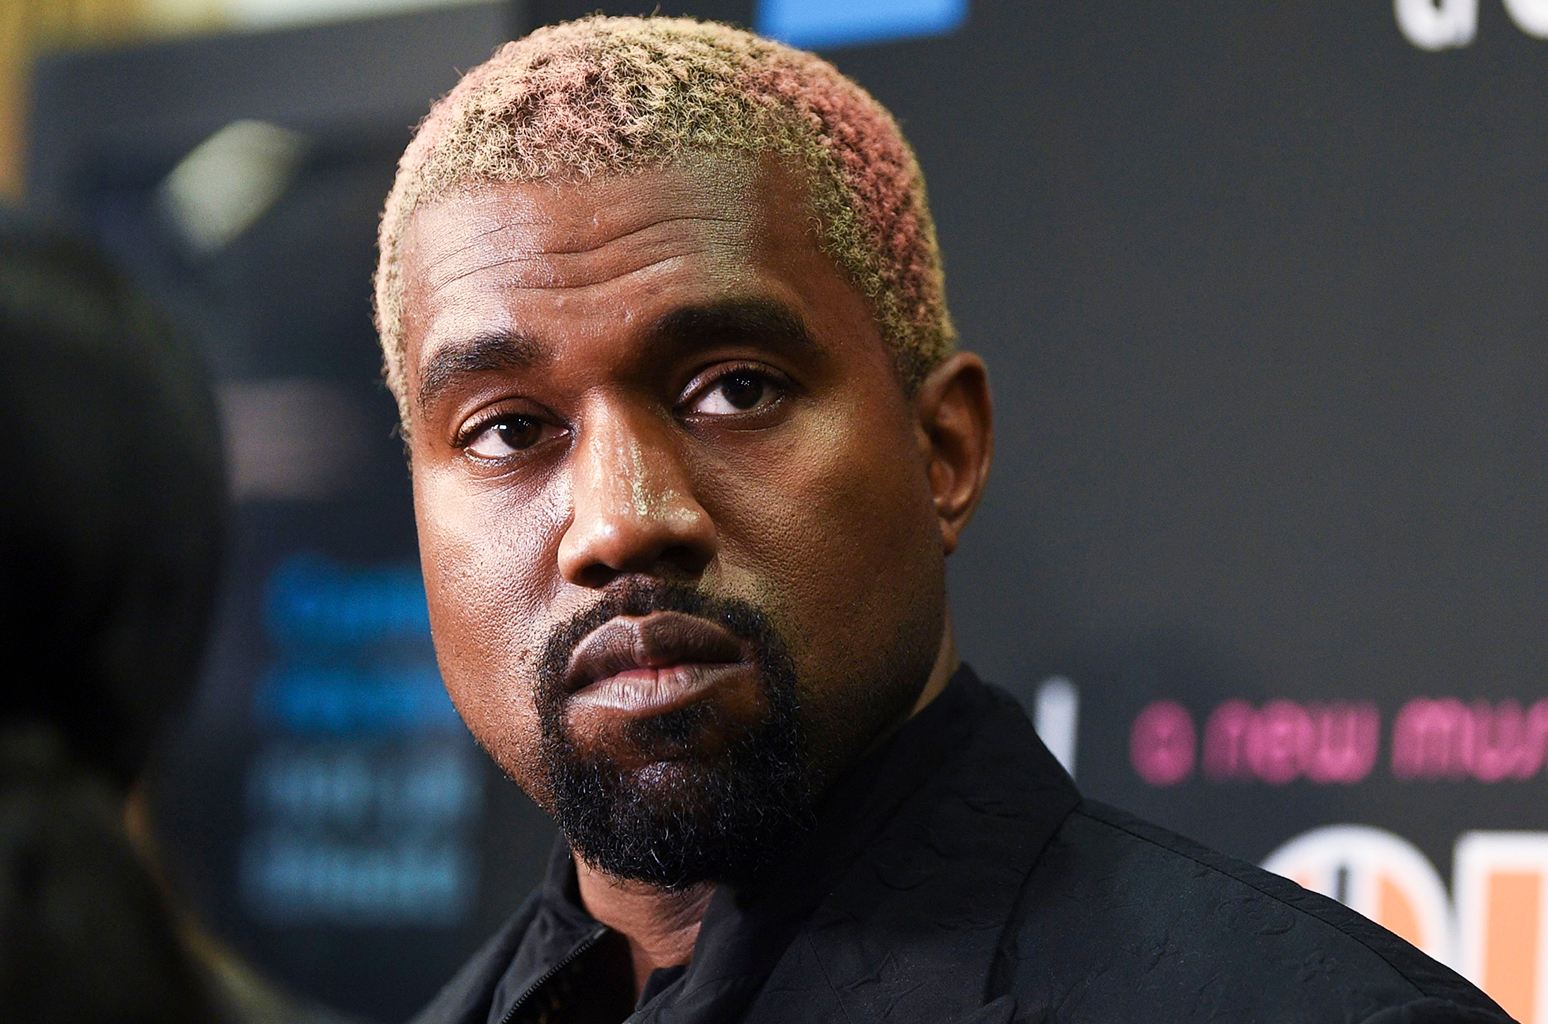 Kanye West Pulled Out of Coachella Because the Festival Wouldn't Build Him a Giant Dome: Exclusive | Billboard